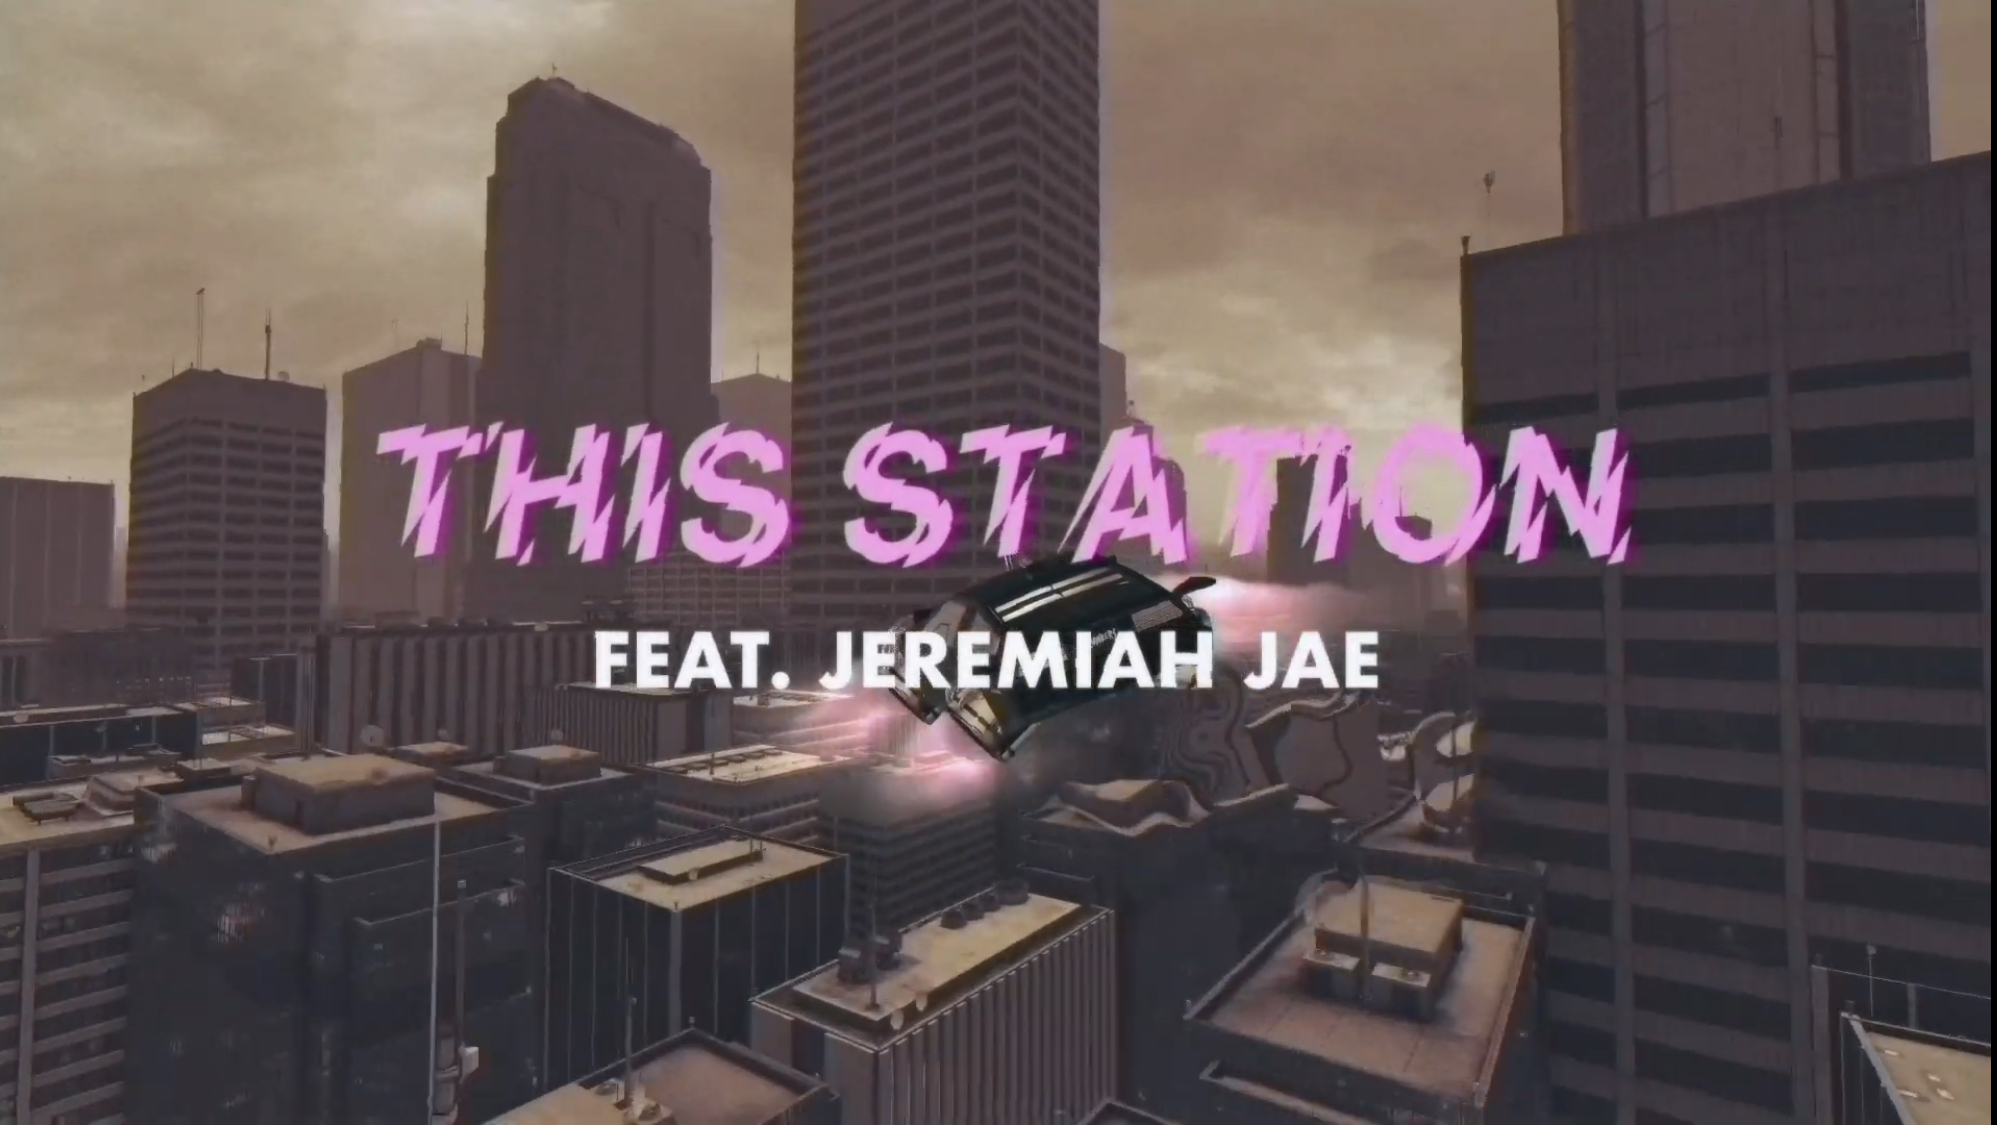 Quakers - This Station - feat. Jeremiah Jae [video]